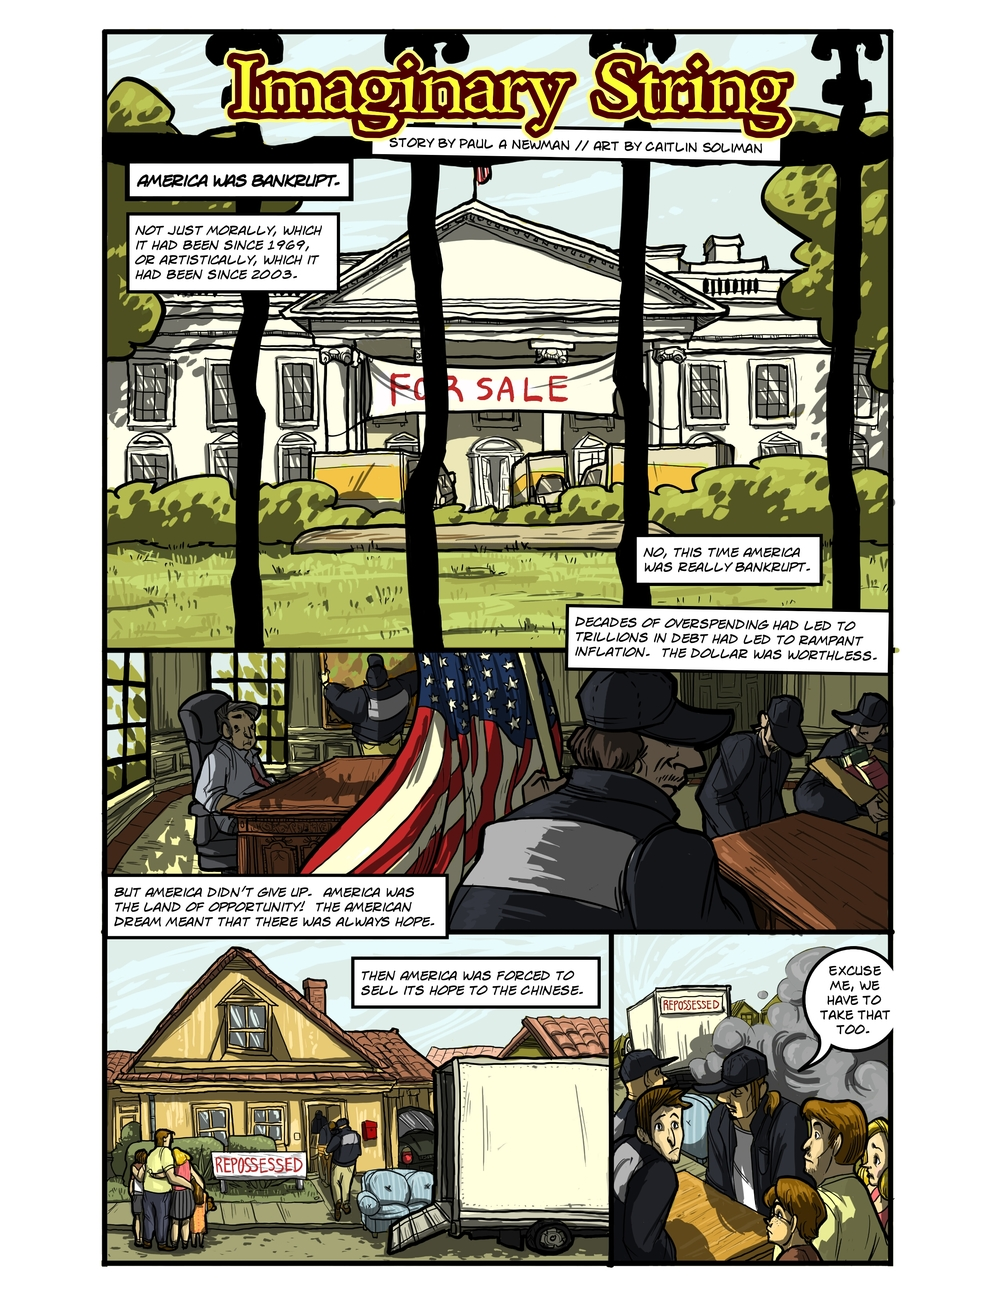 IMAGINARY STRING page 1 - story 20 in The Book of Lies